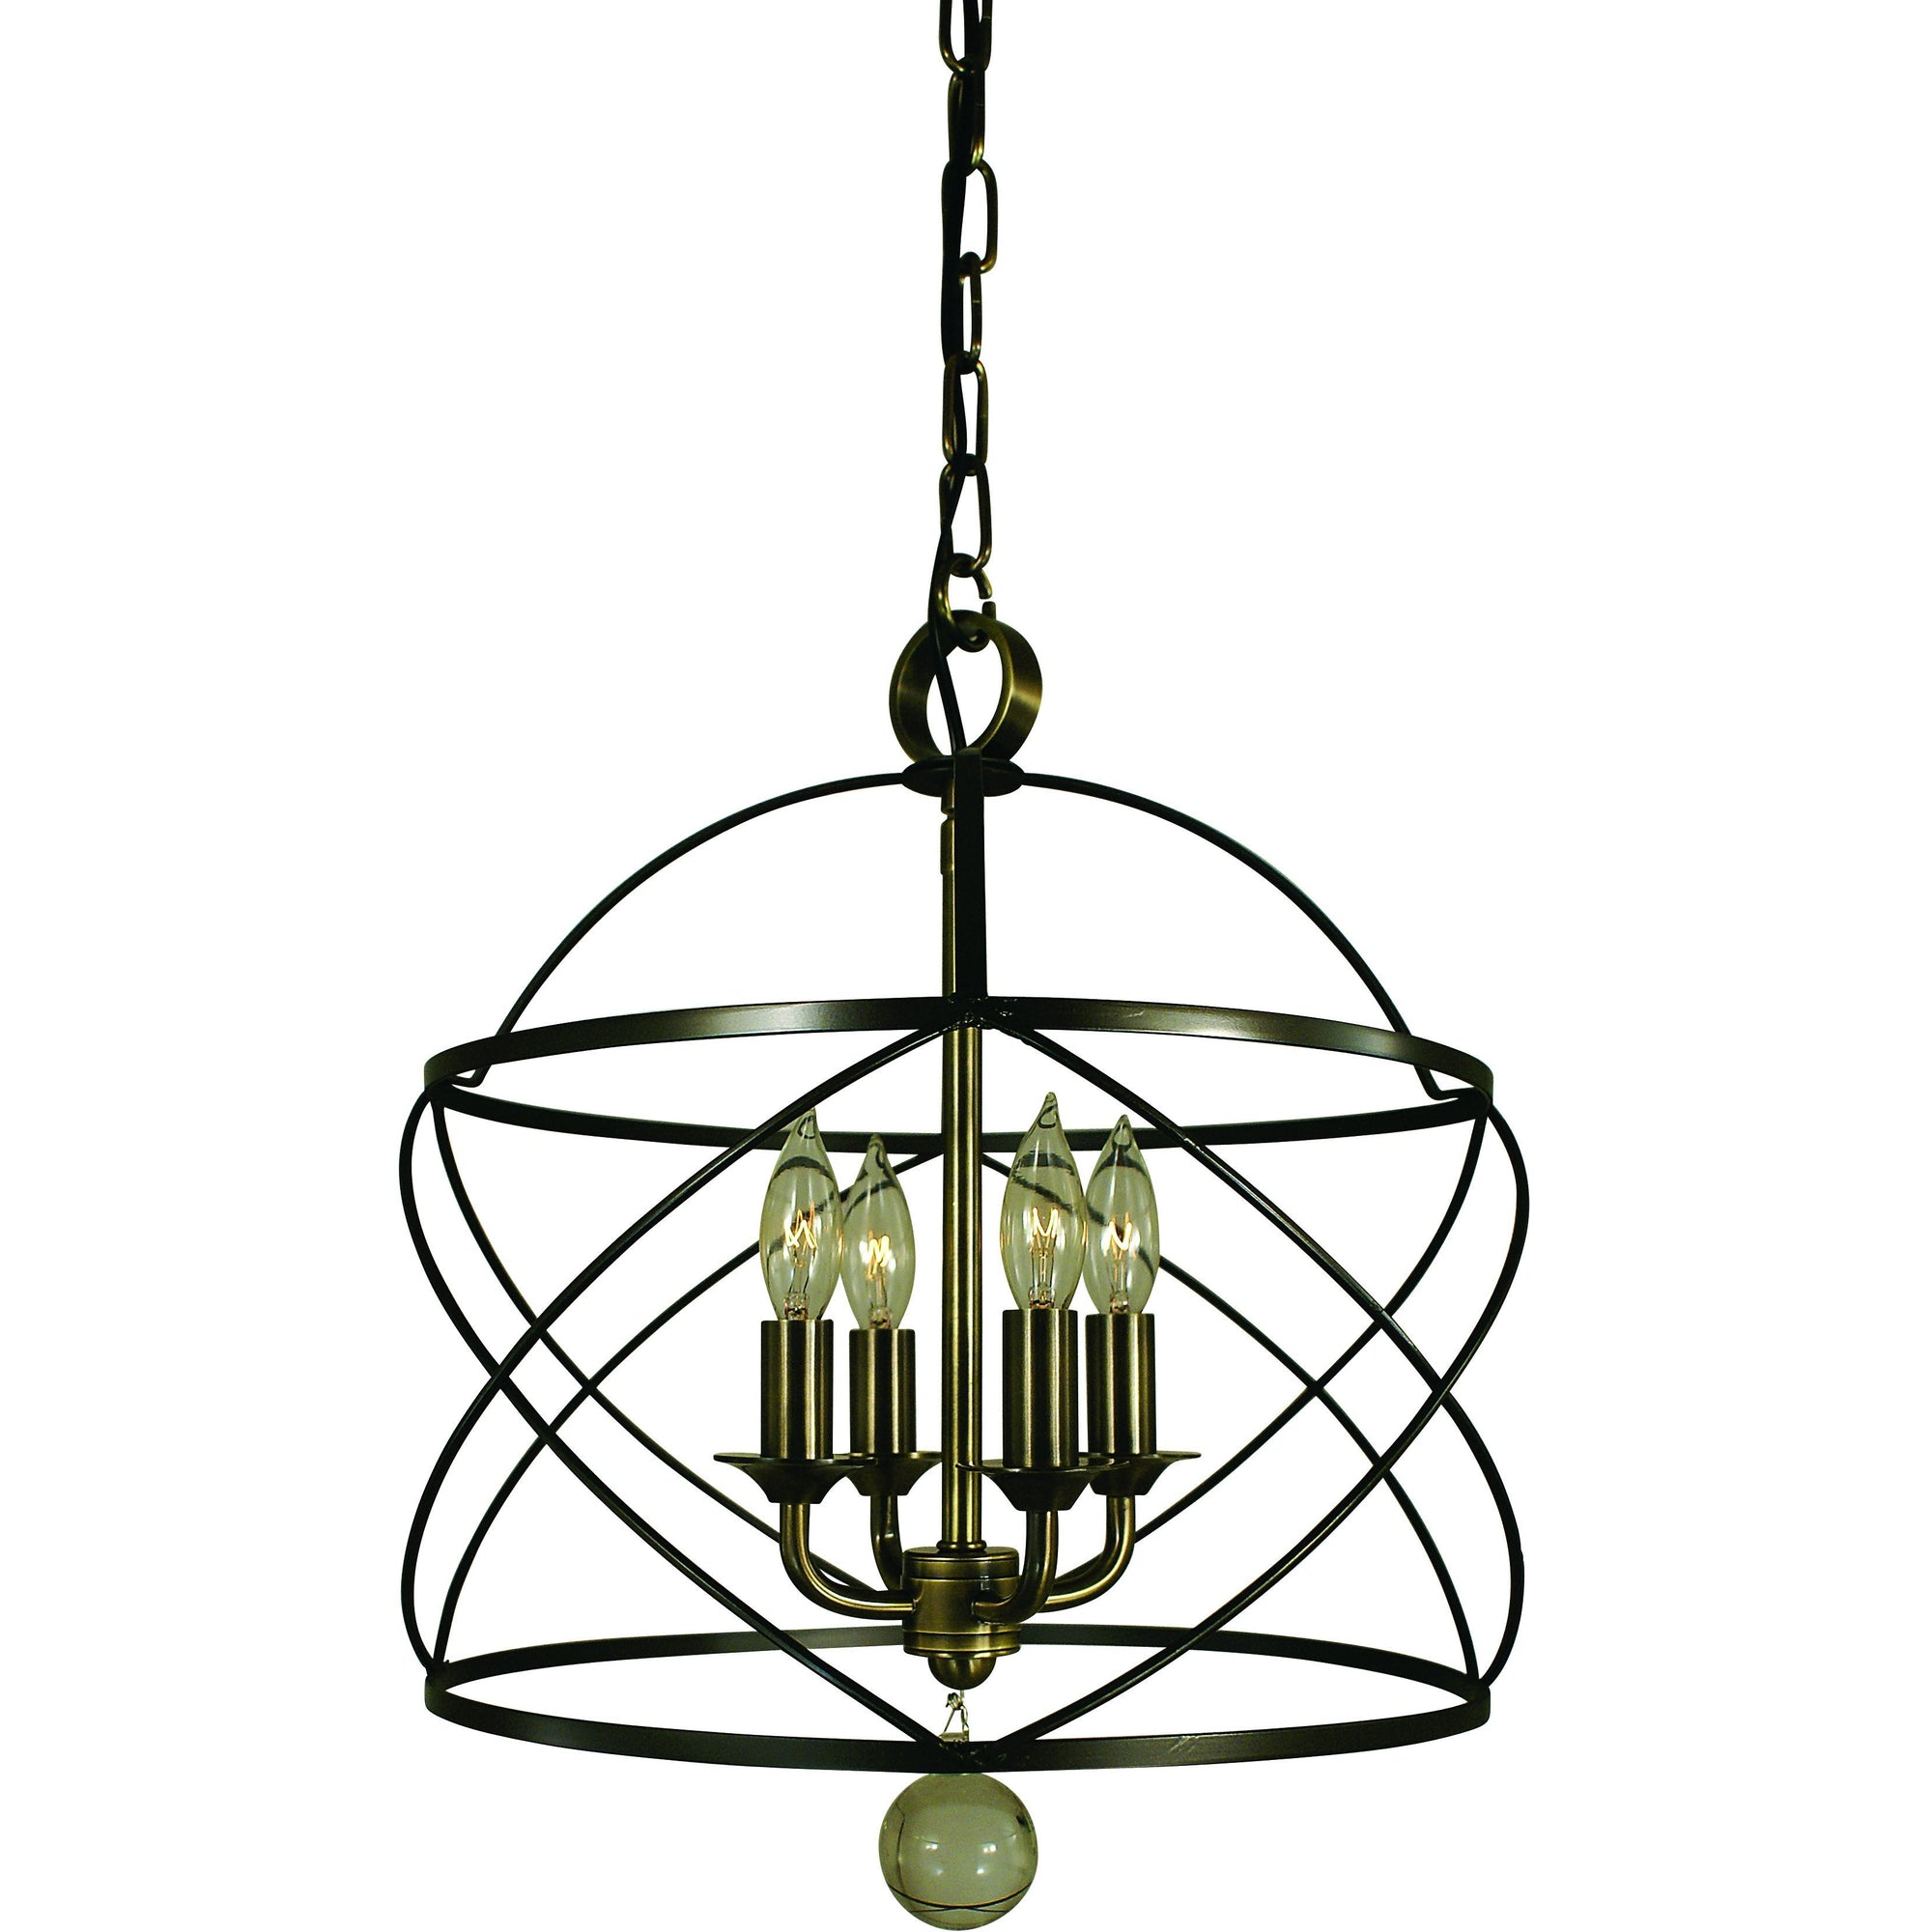 Framburg Mini Chandeliers Mahogany Bronze and Antique Brass 4-Light Mahogany Bronze/Antique Brass Nantucket Chandelier by Framburg 4414